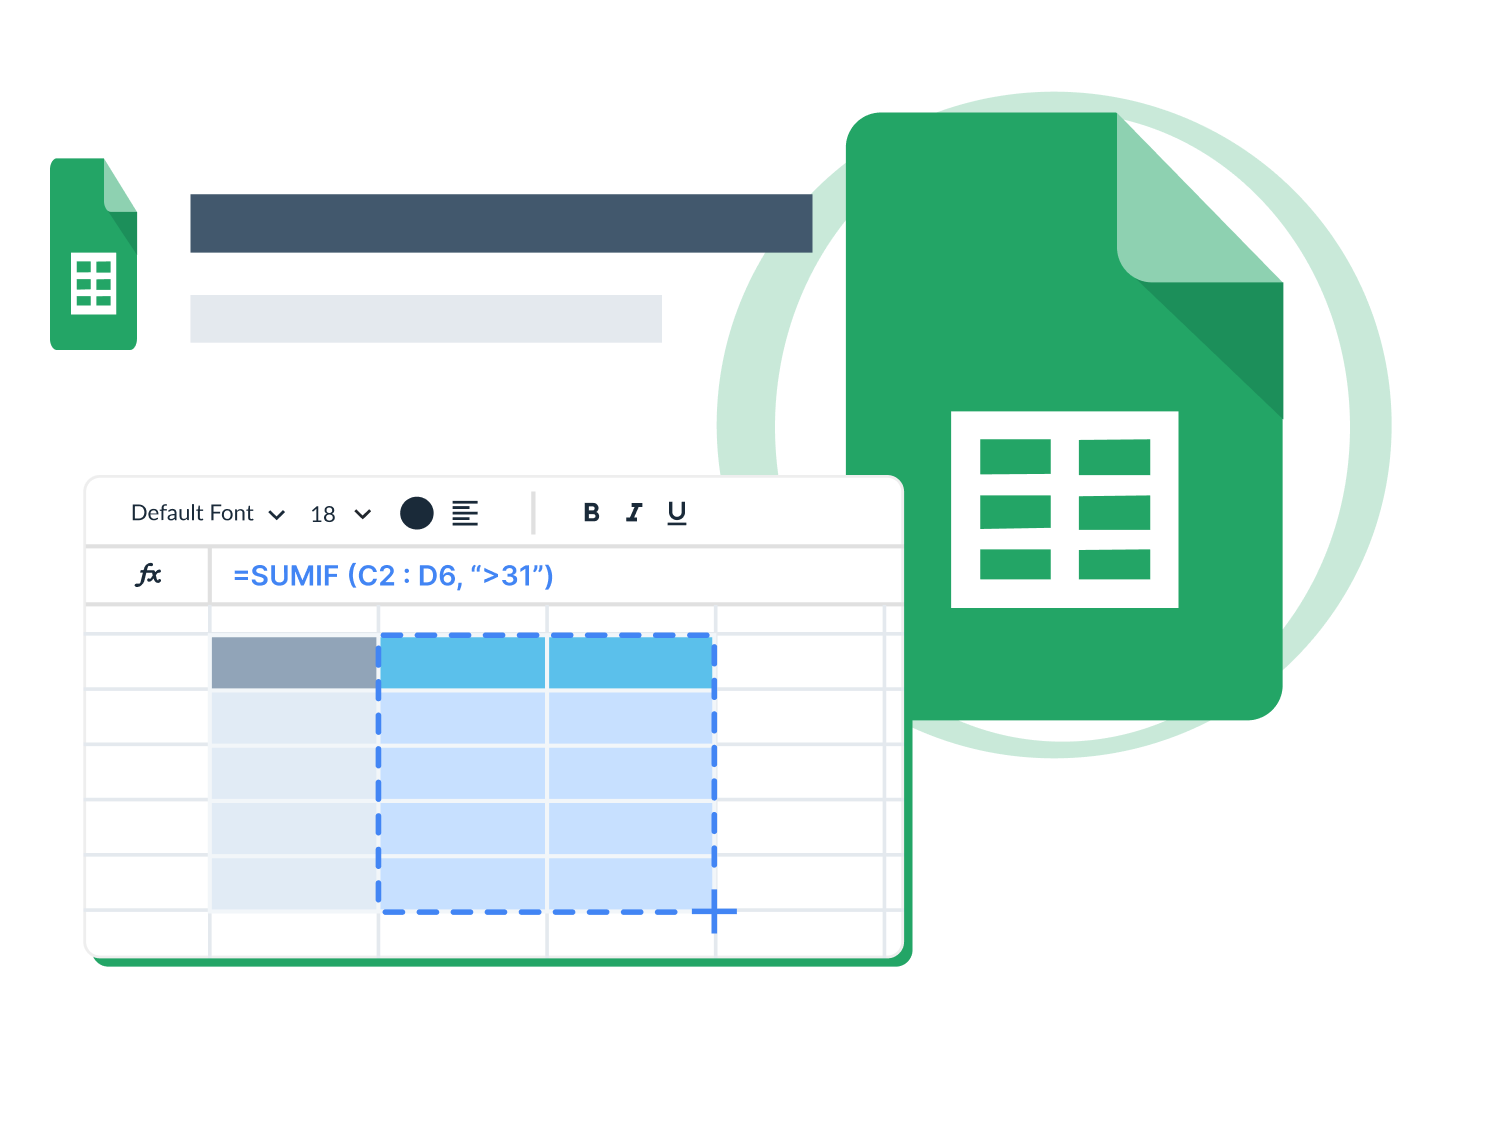 Microsoft excel icon and sheet.